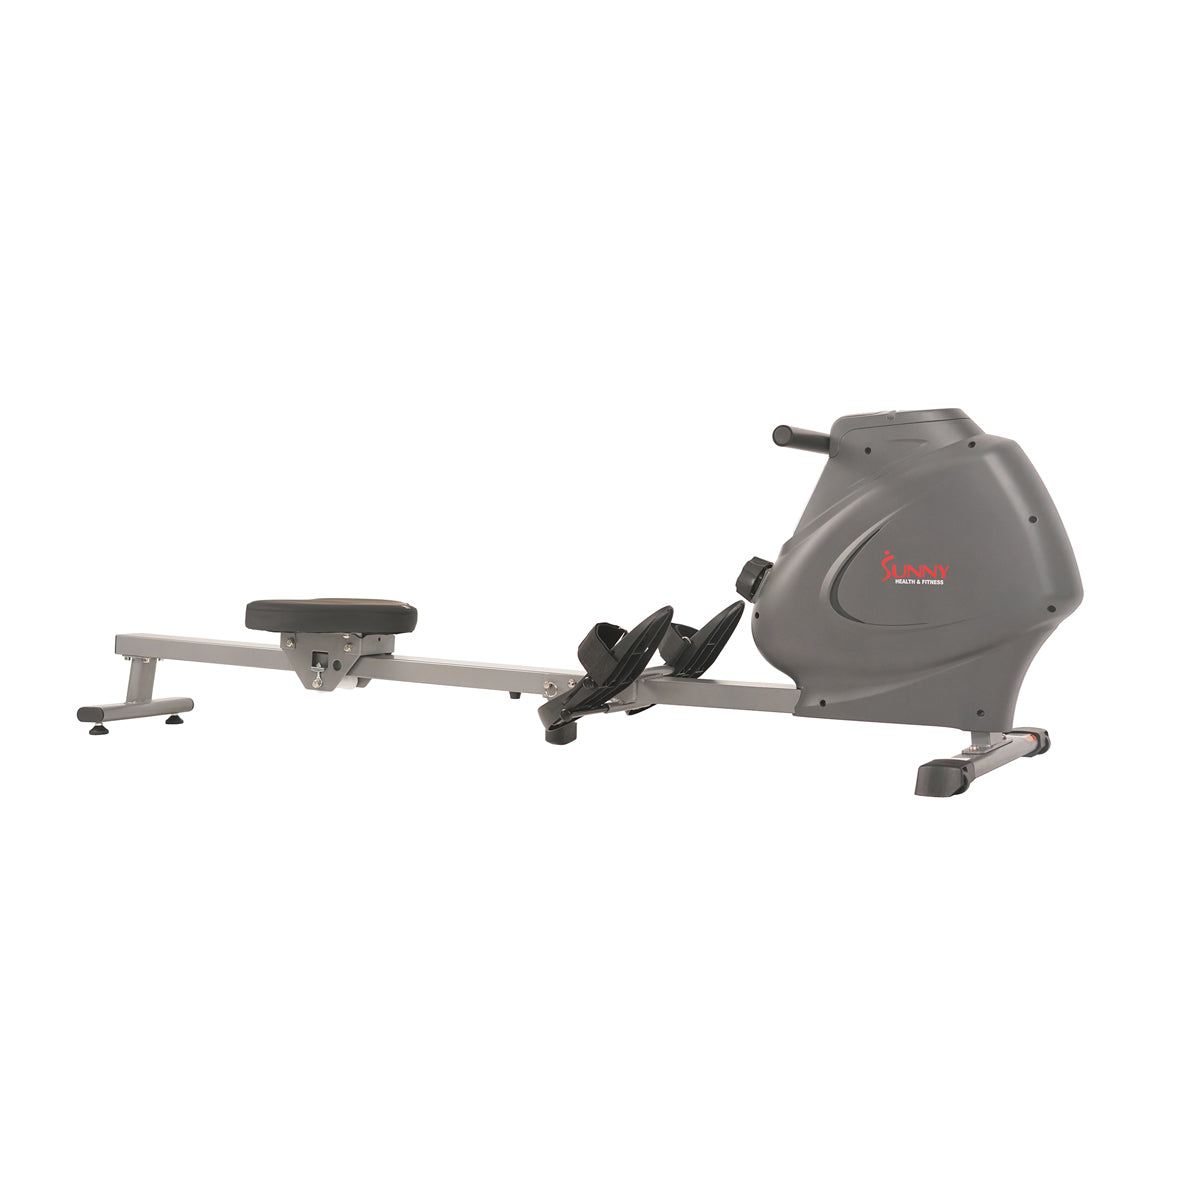 Sunny Health & Fitness Magnetic Rowing Machine Rower, LCD Monitor with Bottle Holder - Synergy Power Motion